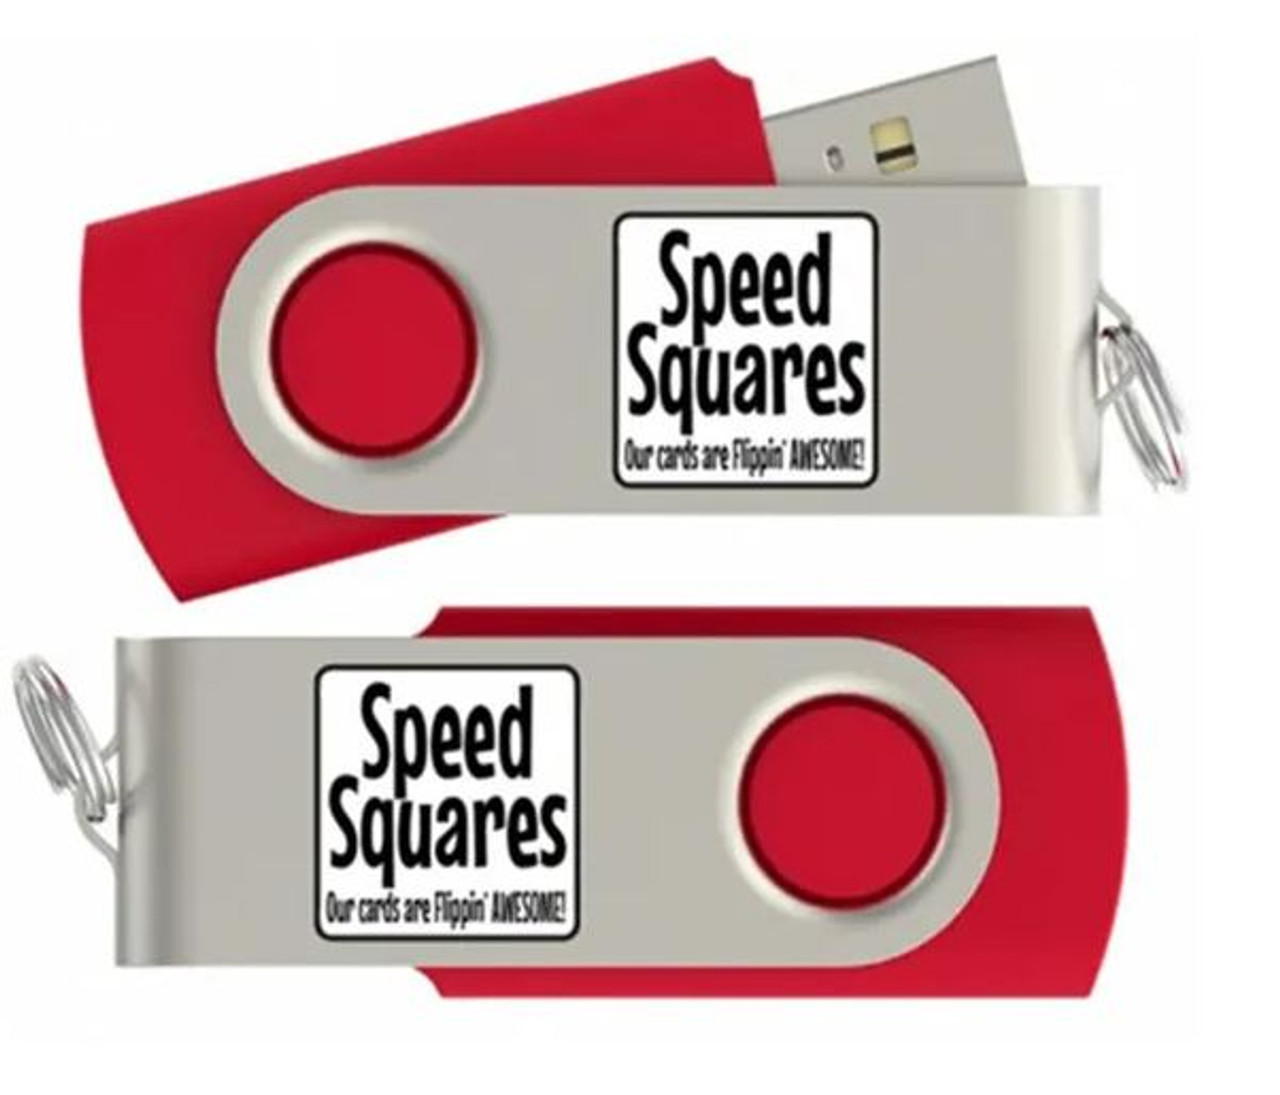 Speed Squares Flash Drive with Free Deck